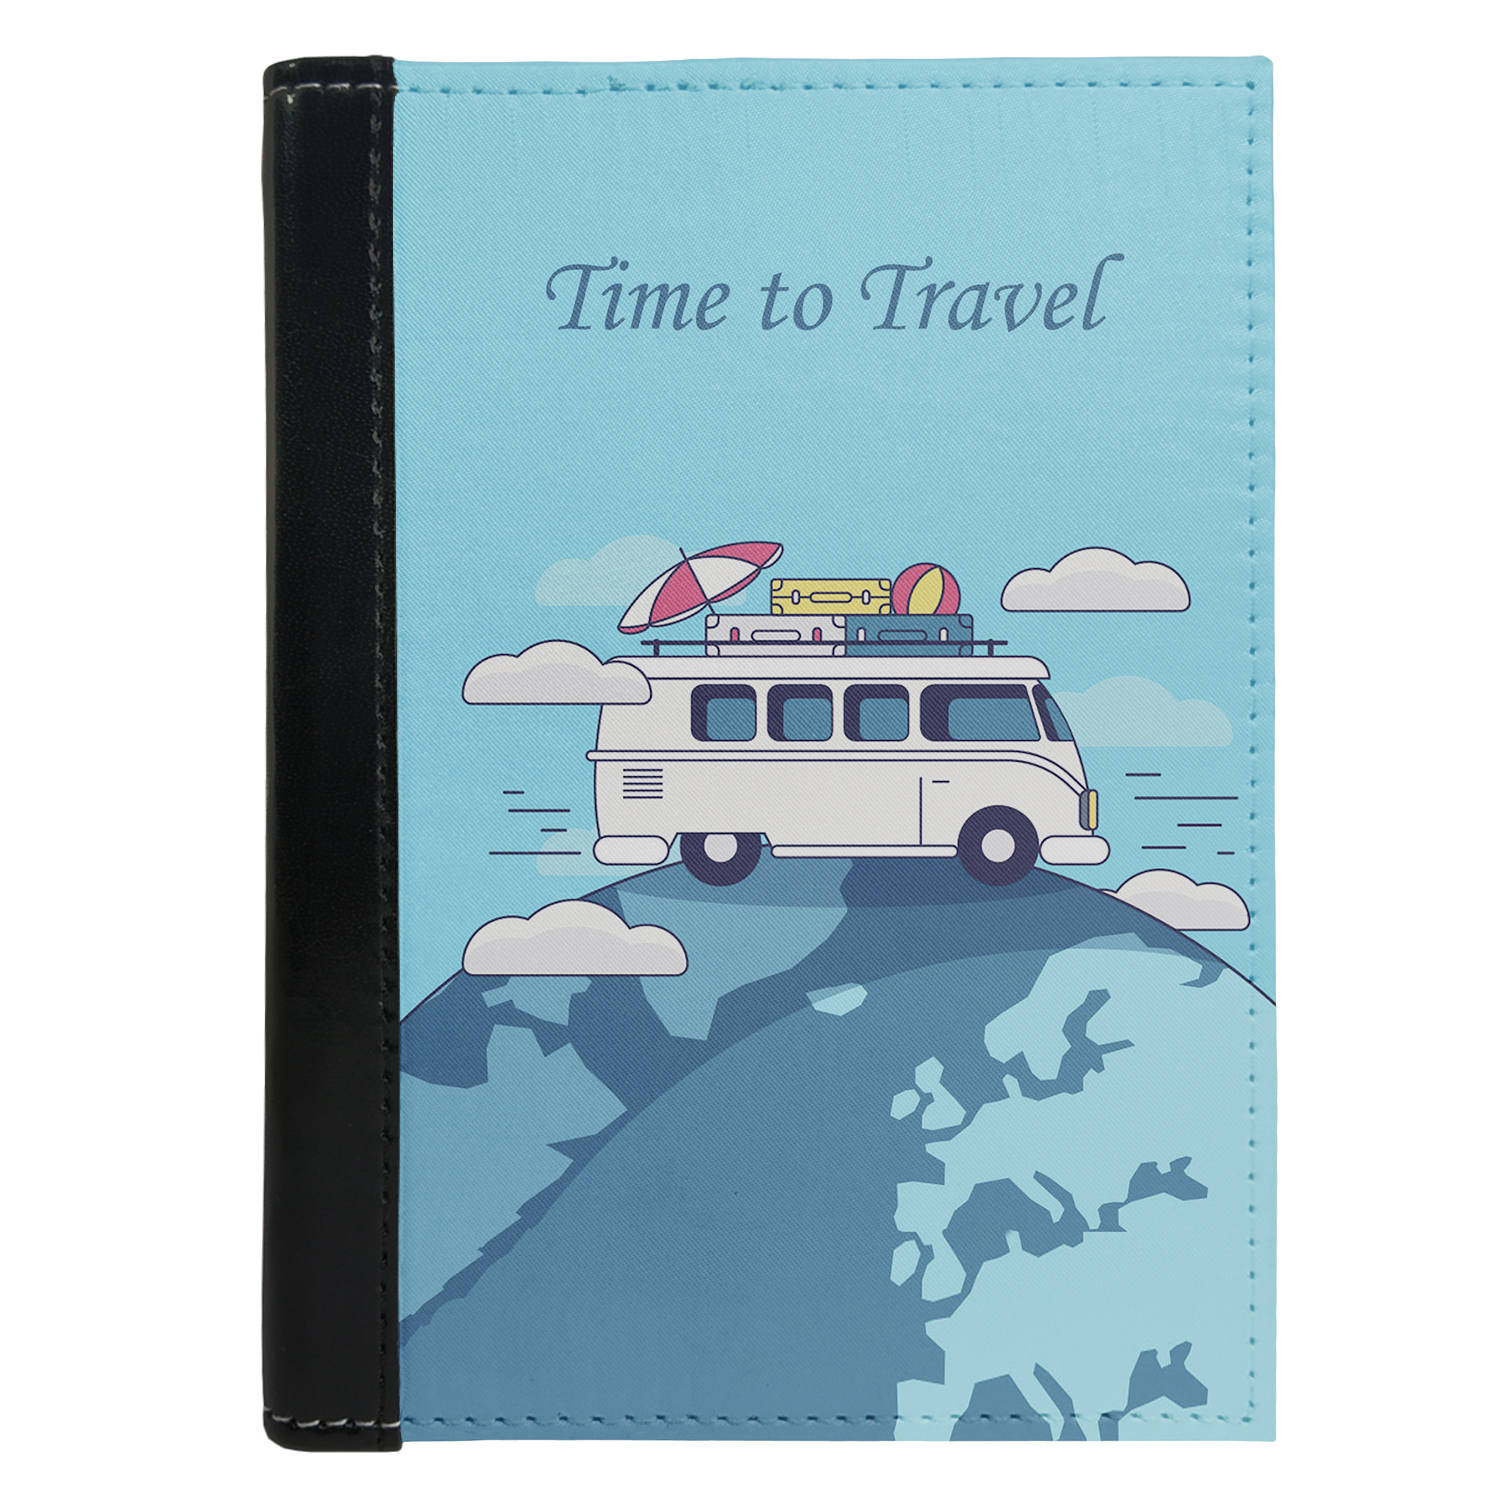 Passport Cover Passport Holder - For Men and Women Time To Travel On World With Luggage Over Bus